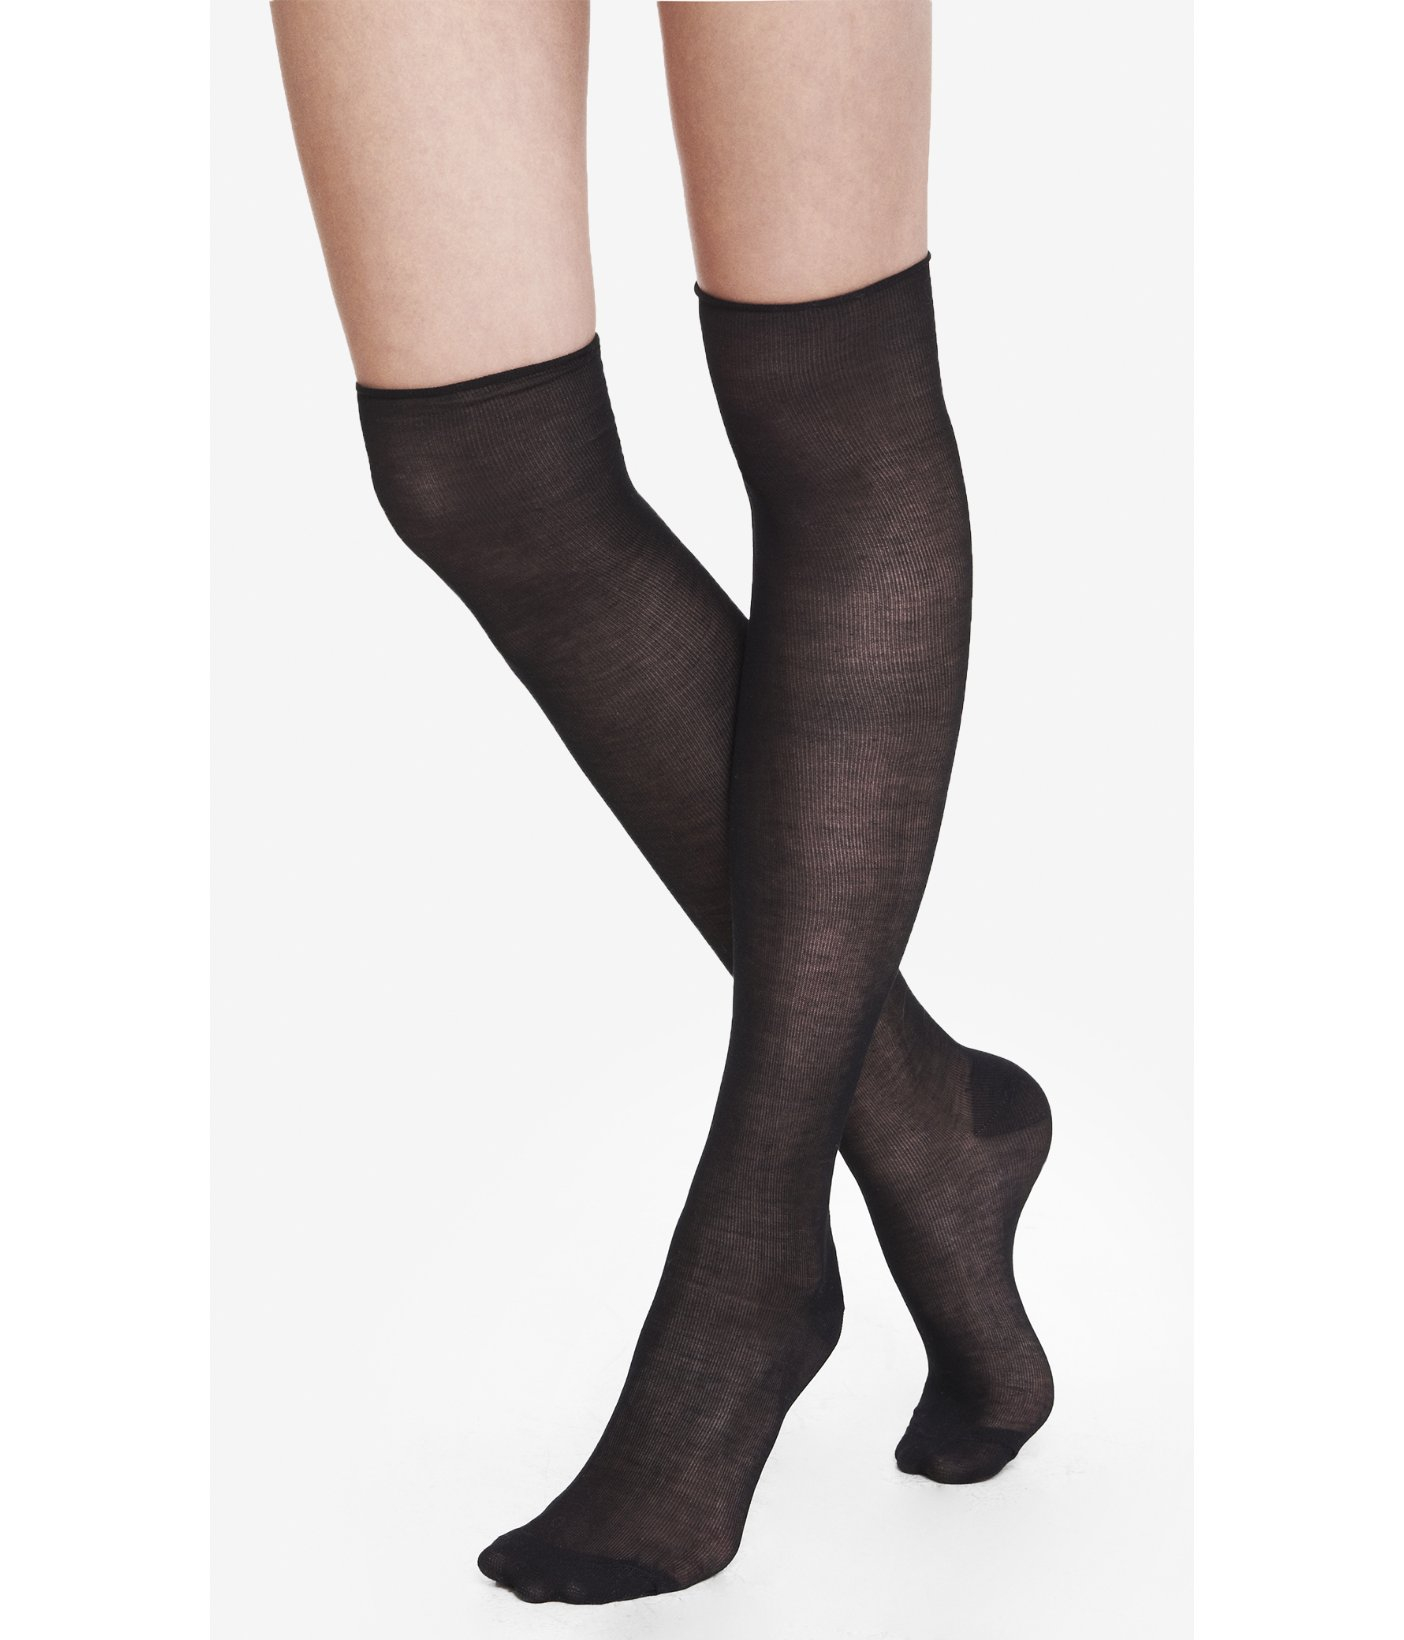 Muk Luks Women's Black Cable Knit Over the Knee Socks Black OSFM. Sold by fabulousdown4allb7.cf + 1. $ $ - $ TOPS New Women Knit Over Knee Long Boot Thigh-High Warm Socks. Sold by Top Selling. $ $ Luxury Divas Thin Knit Thigh High Over The Knee Socks. Sold by .